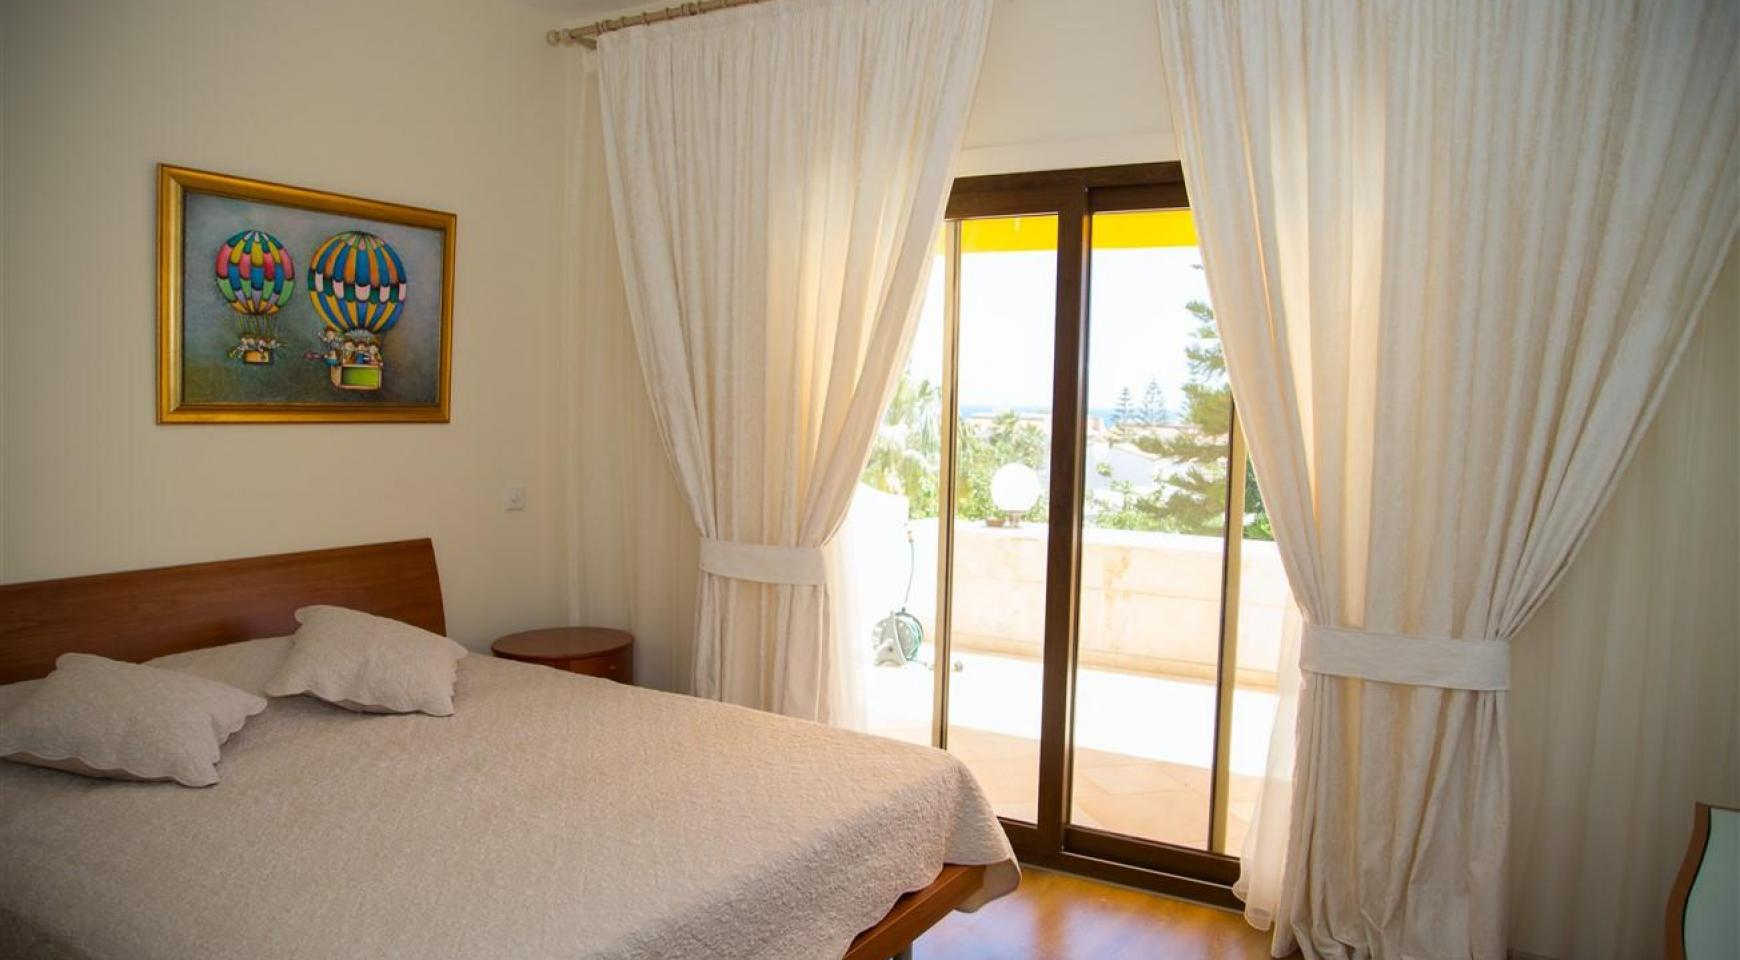 3 Bedroom Apartment in a Gated Complex by the Sea - 37